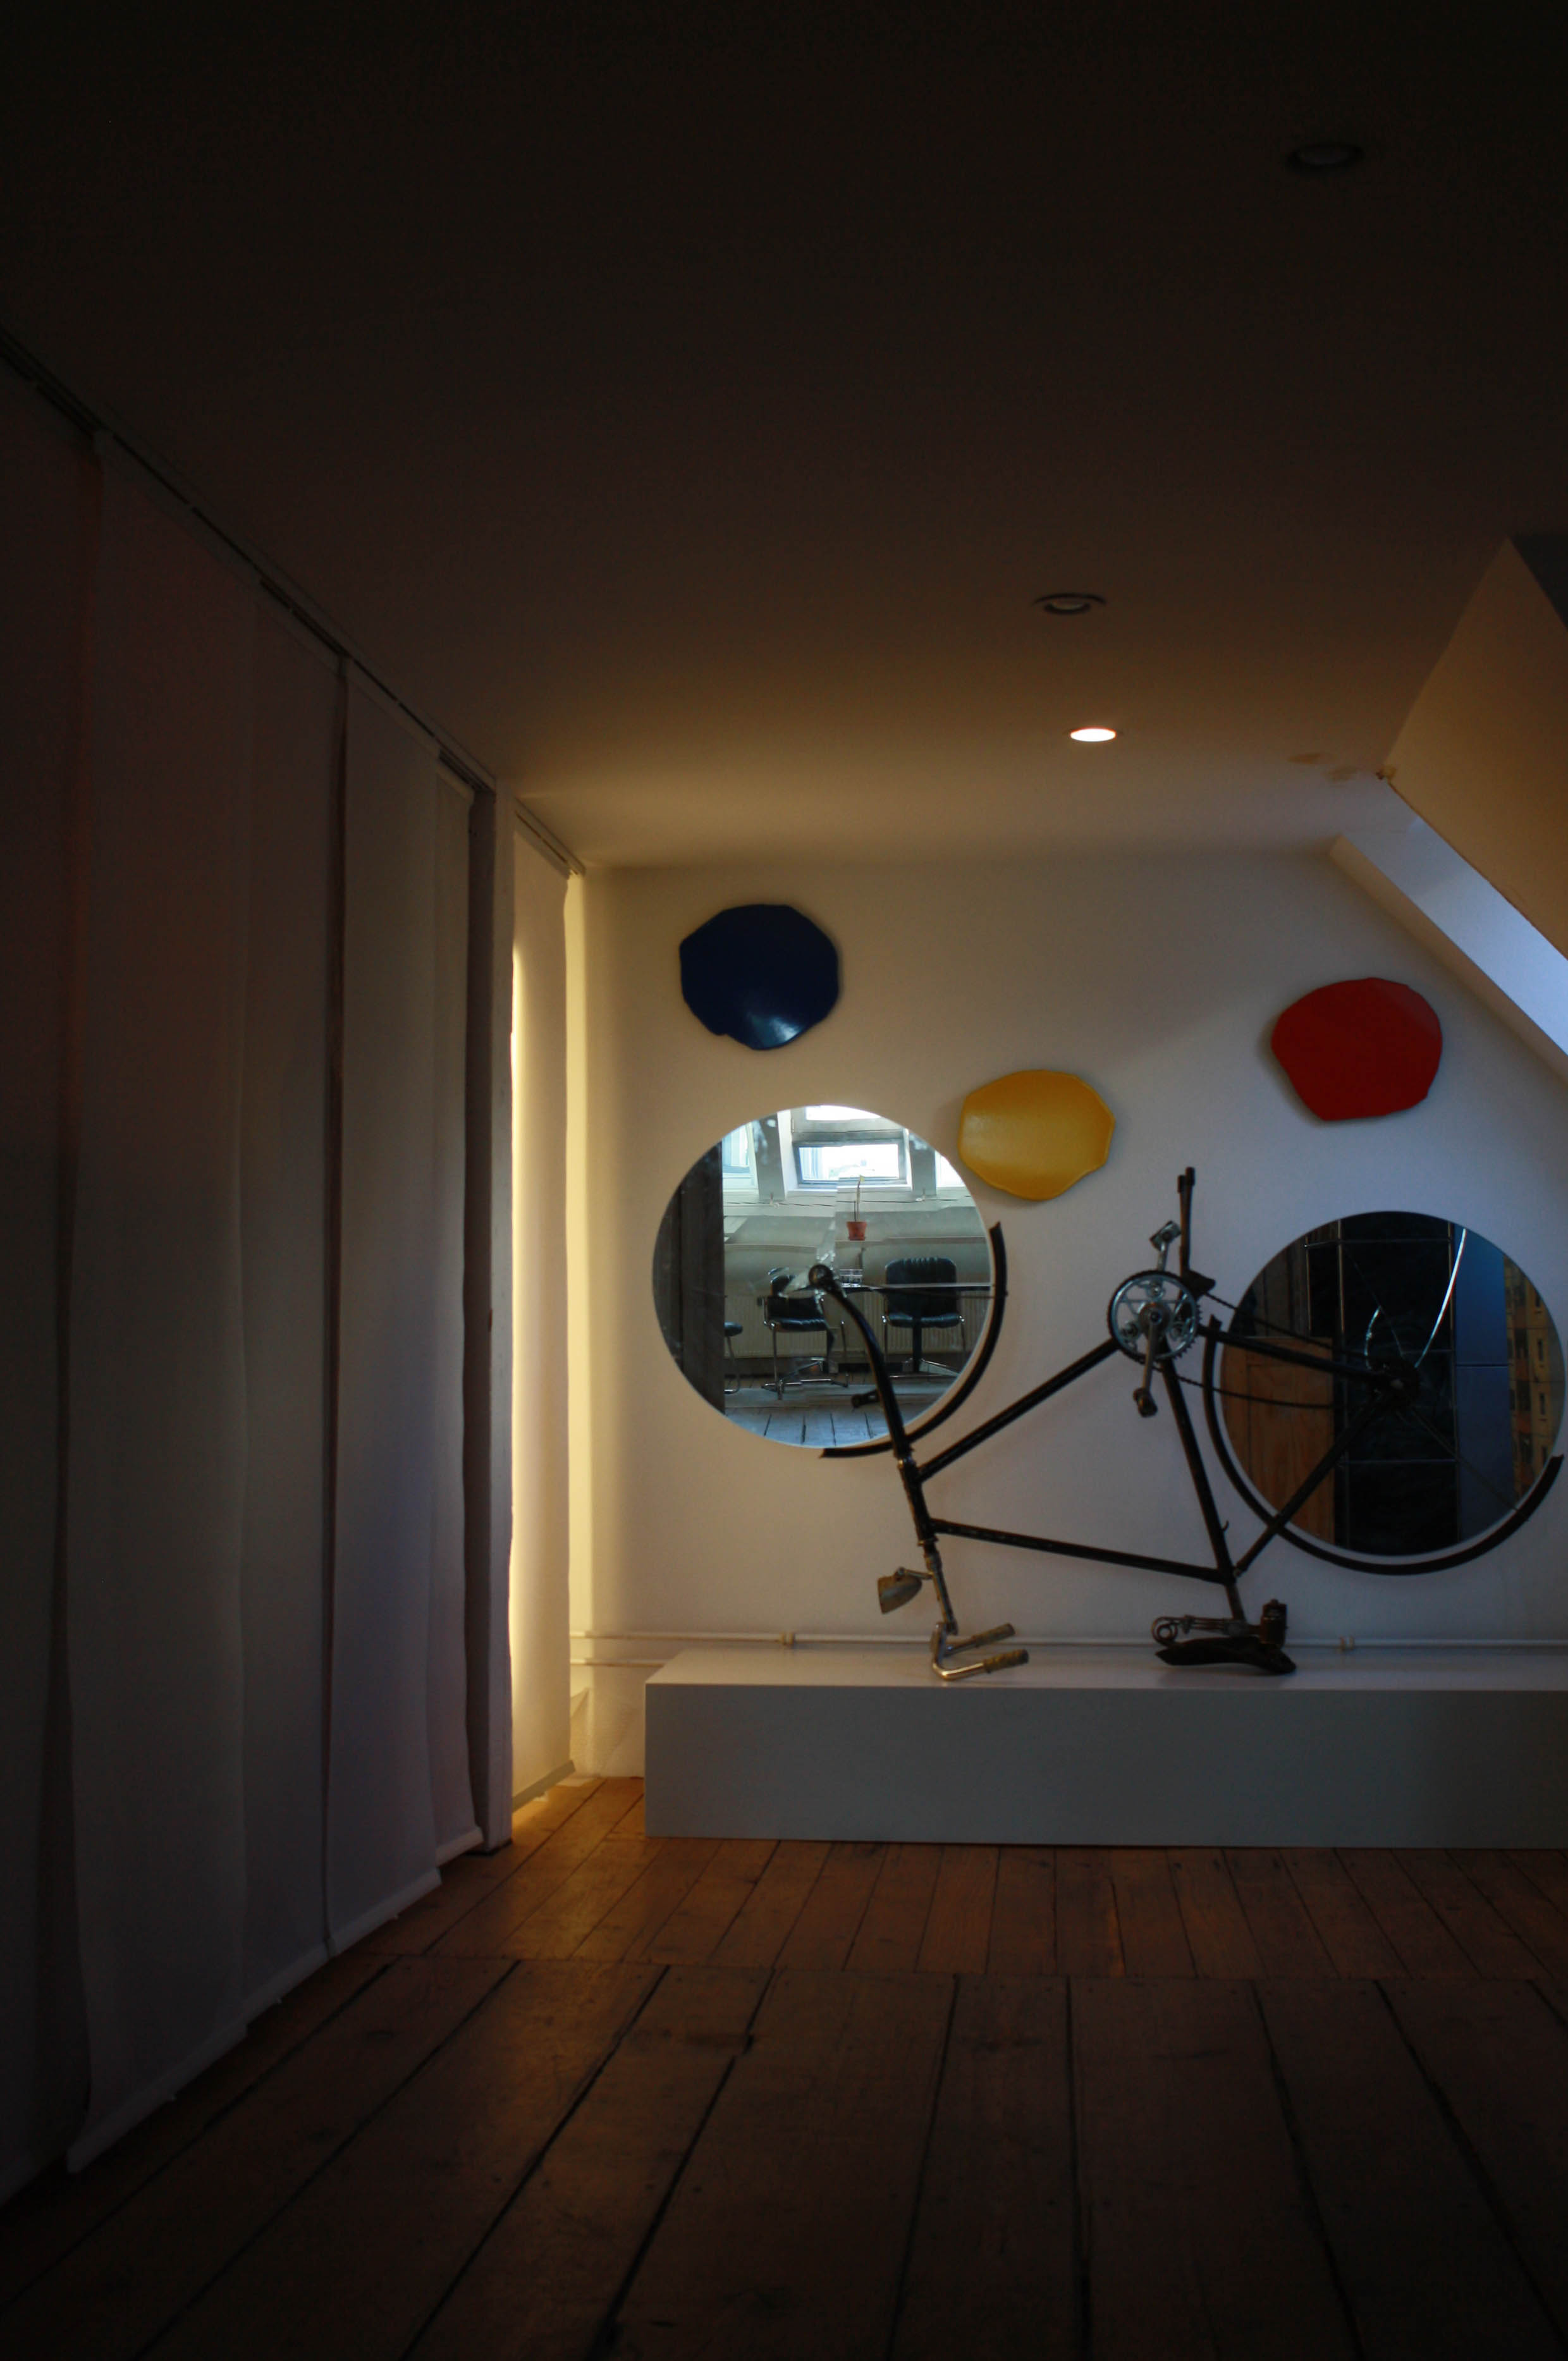 Interior of Collection - Bicycle